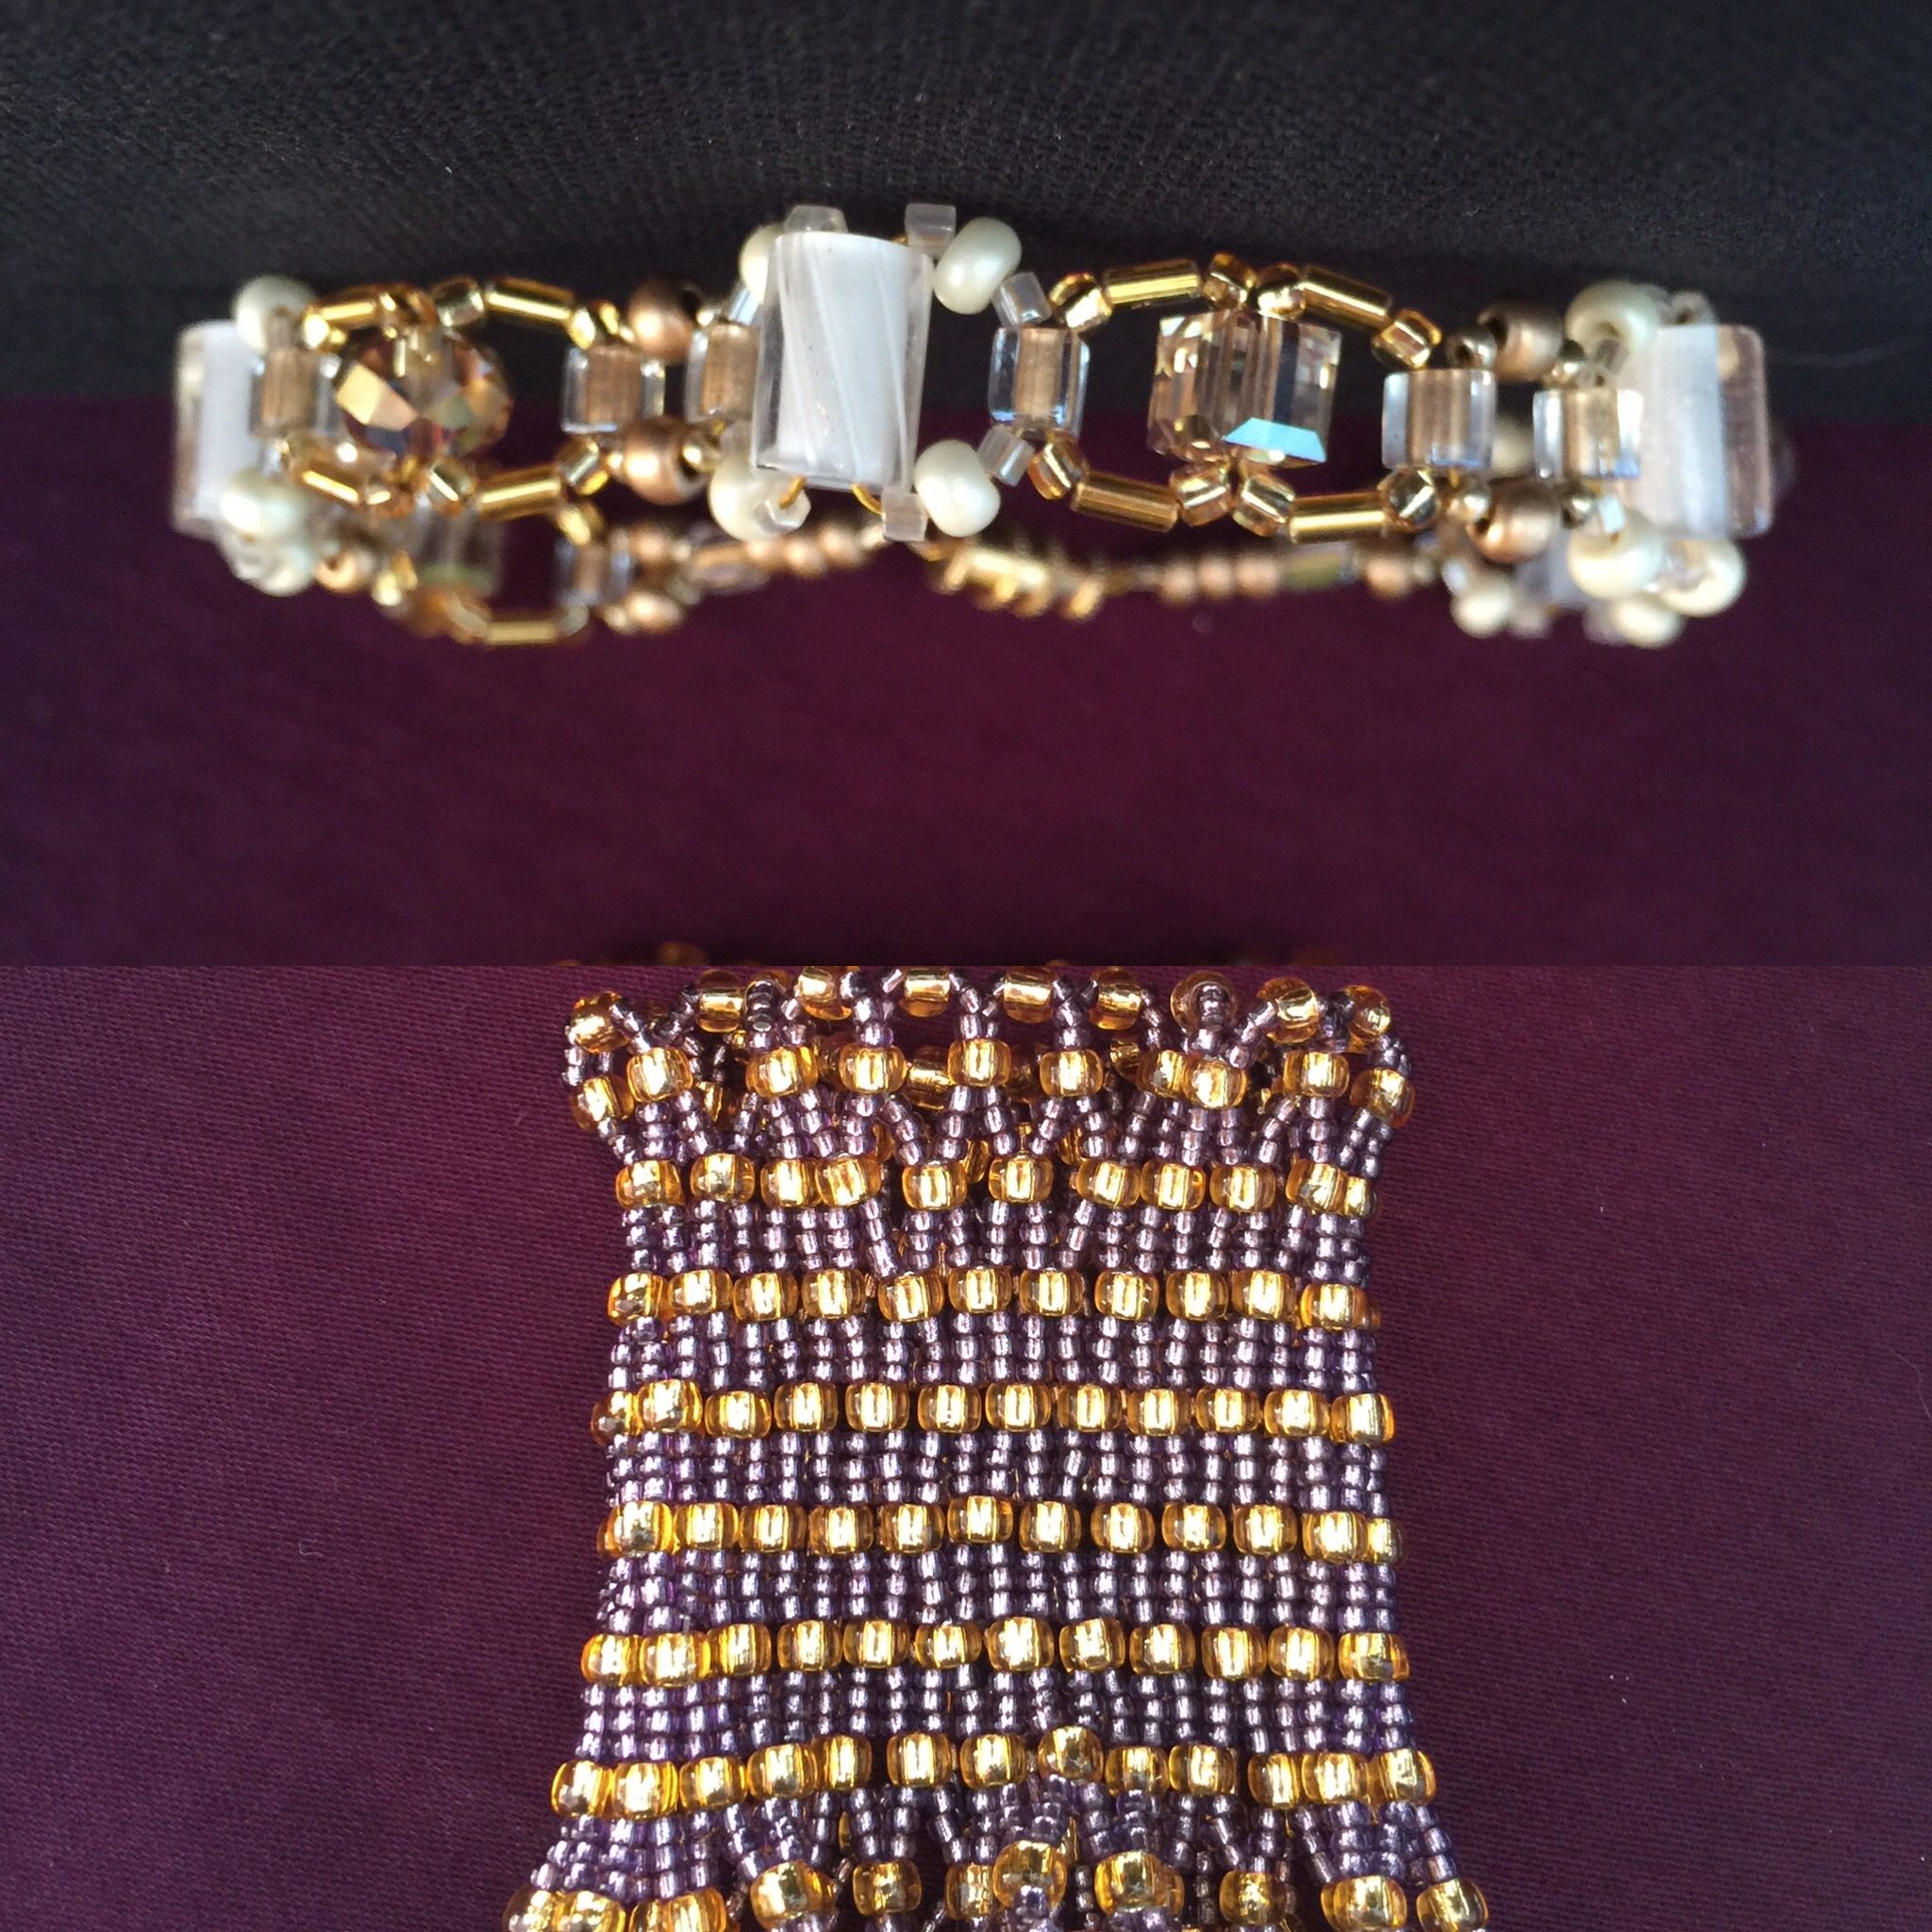 Gold bling anklet and hand woven netted cuff bracelet